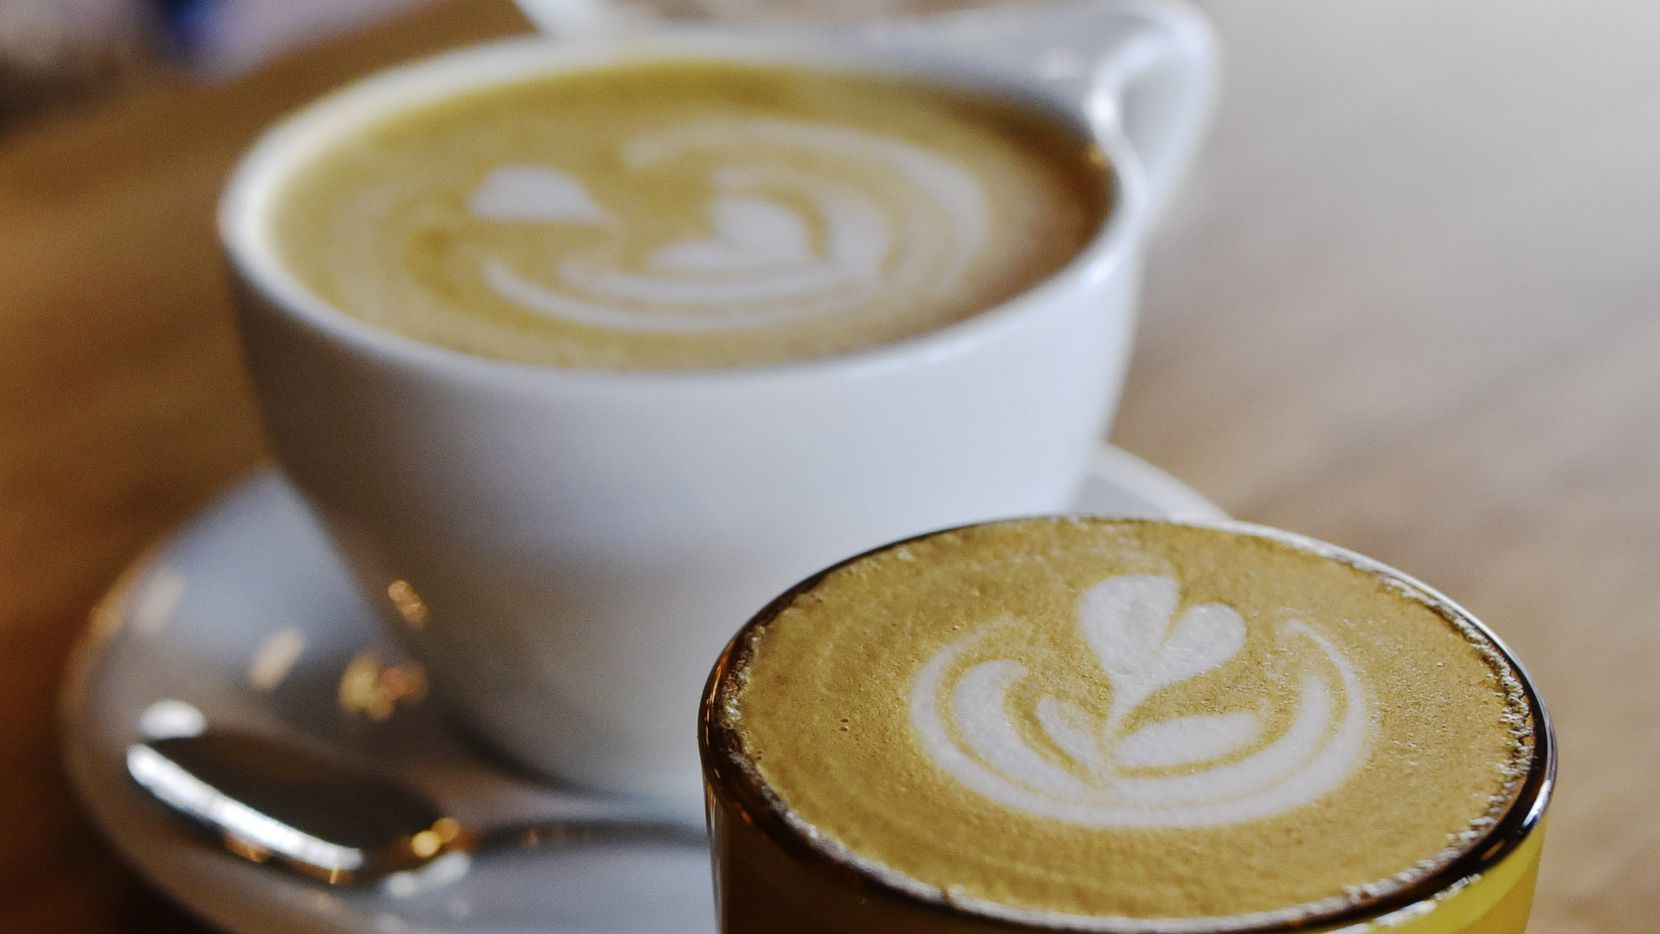 For the purposes of National Coffee Day, cortados and lattes count.